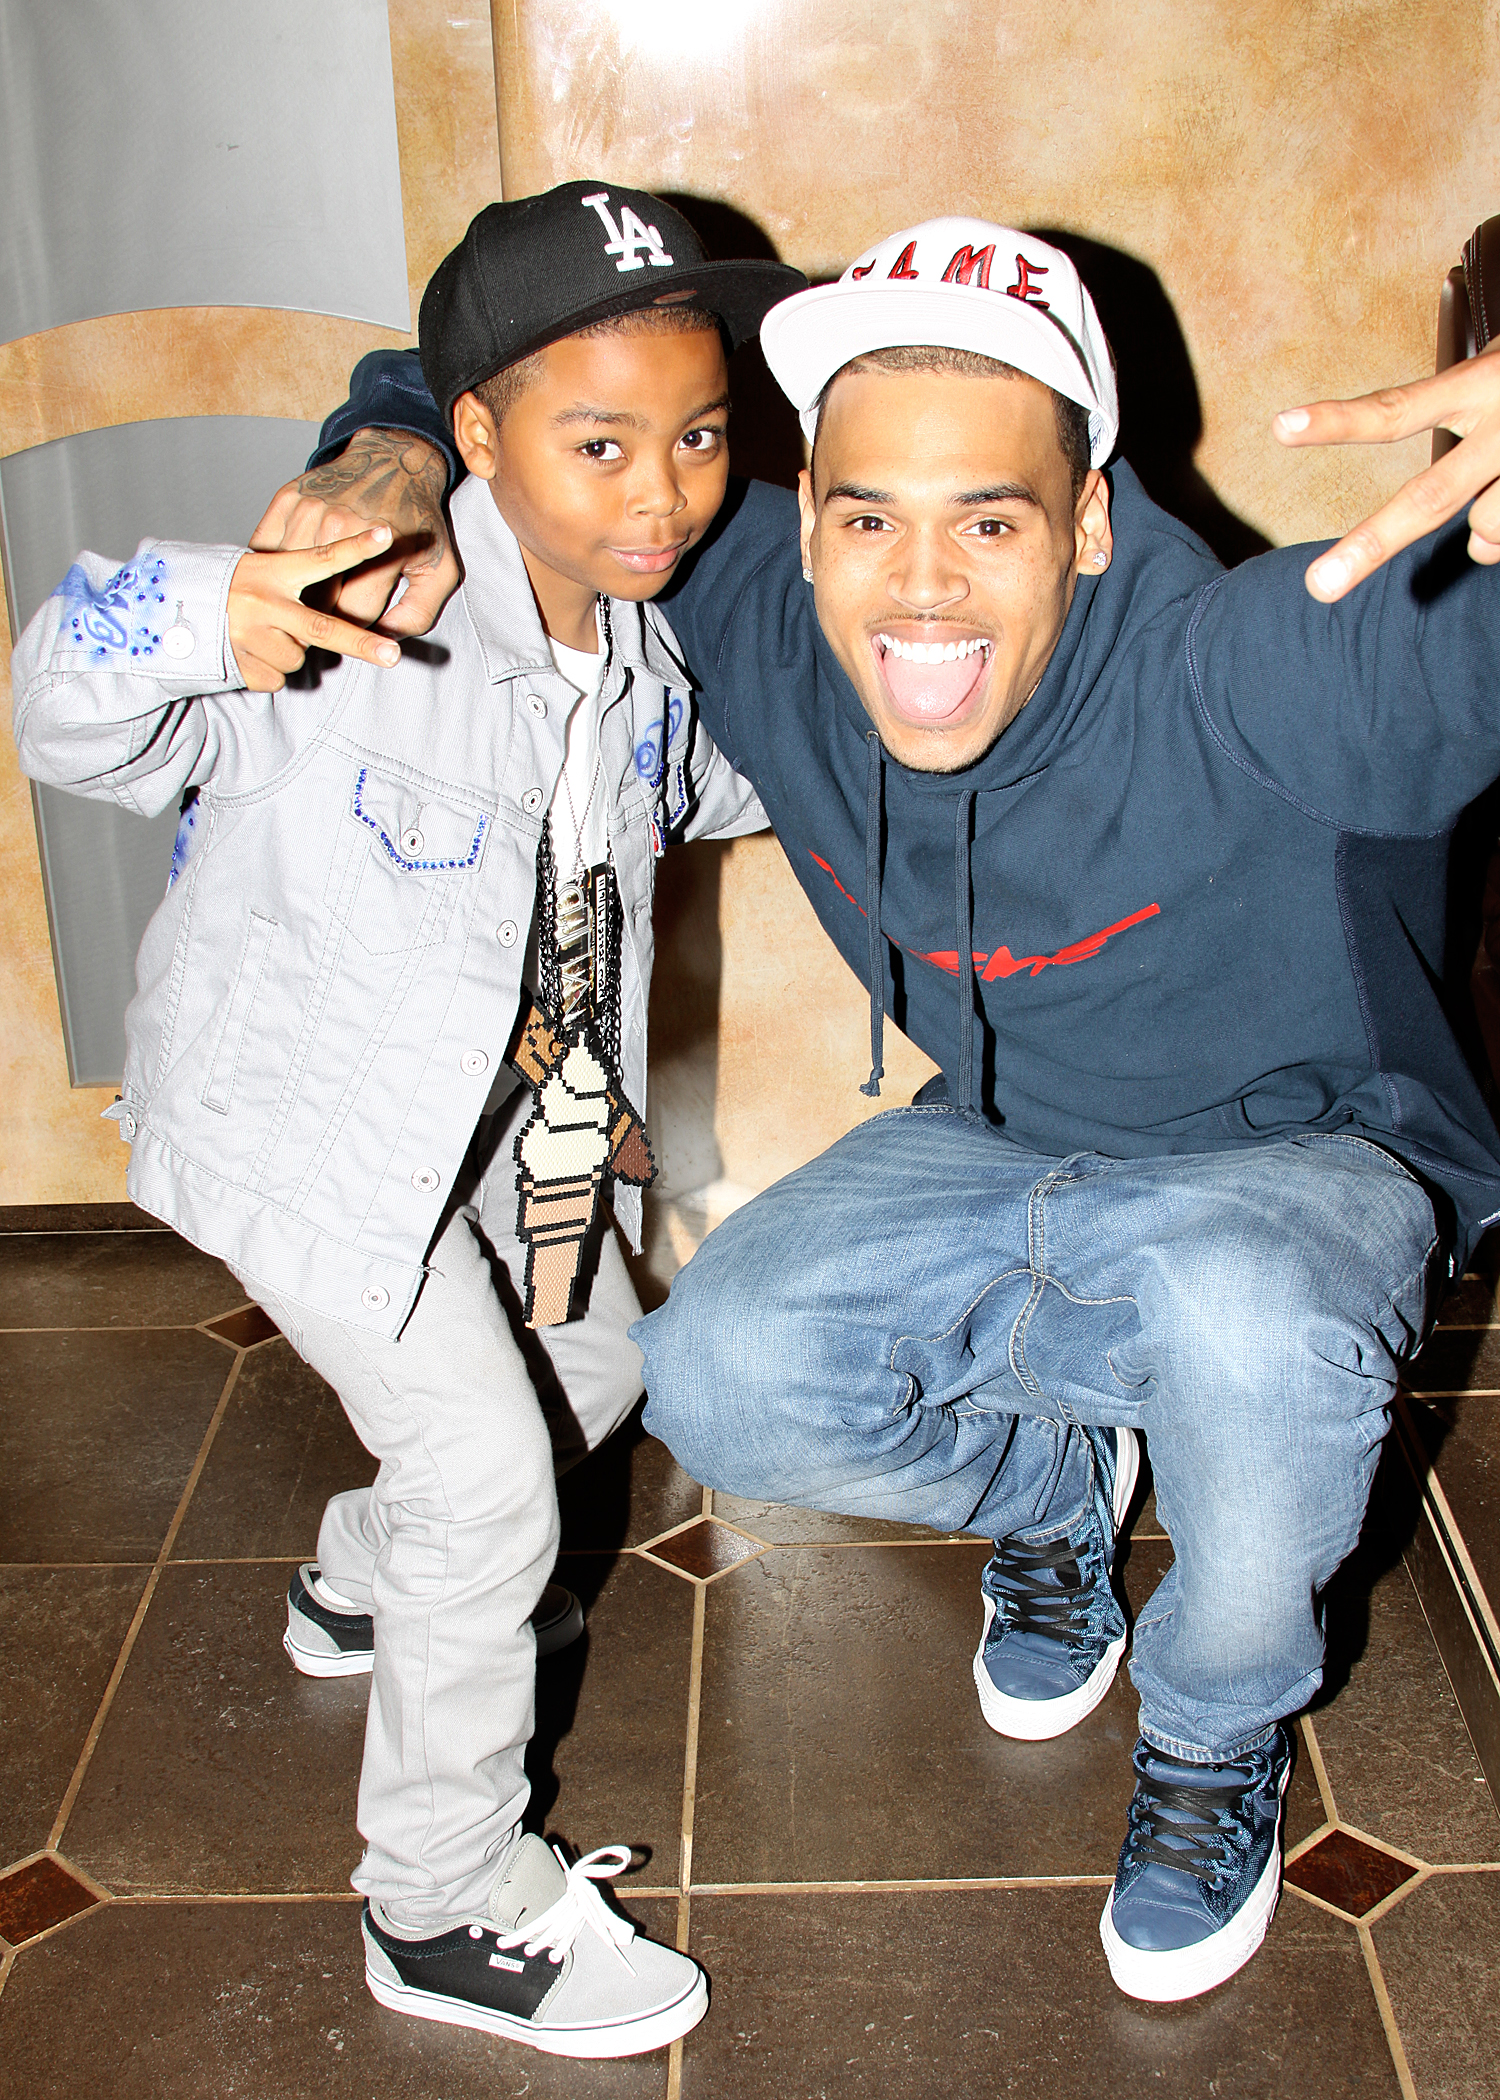 Holmdel nj meet and greets planetchrisbrowninfo click your image m4hsunfo